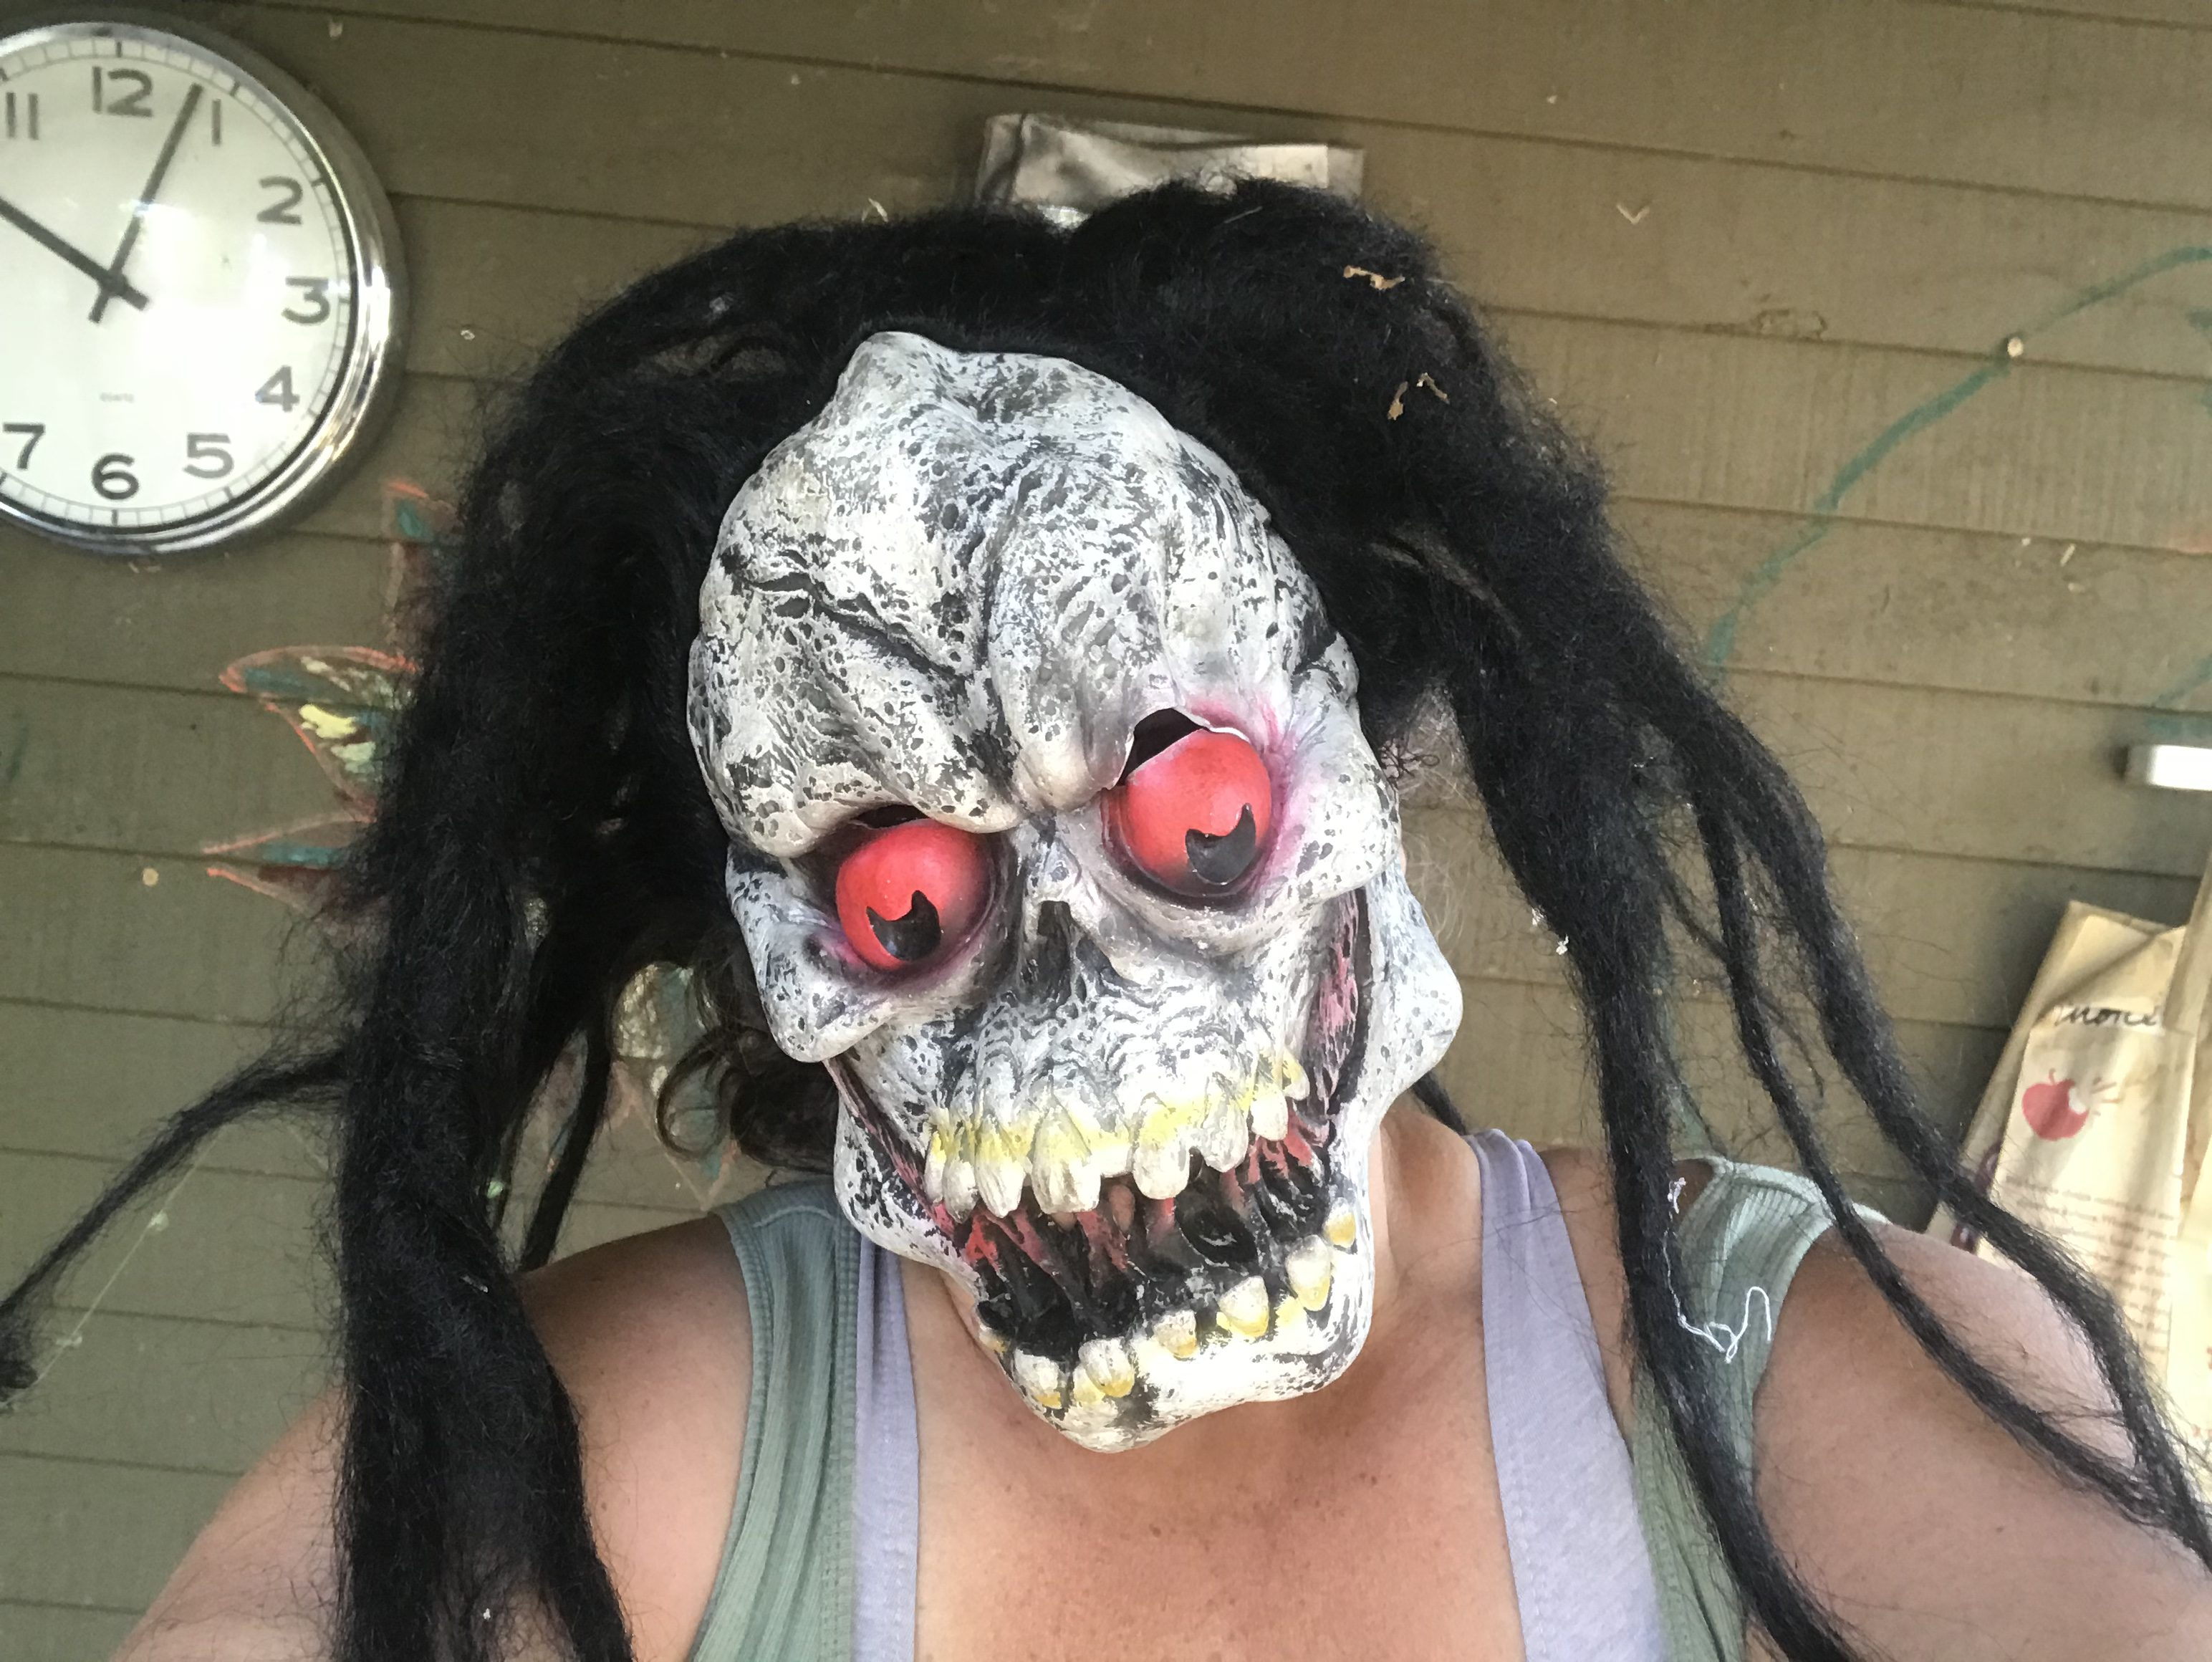 Does My Scary Zombie Halloween Mask Have Unsafe Levels of Lead?